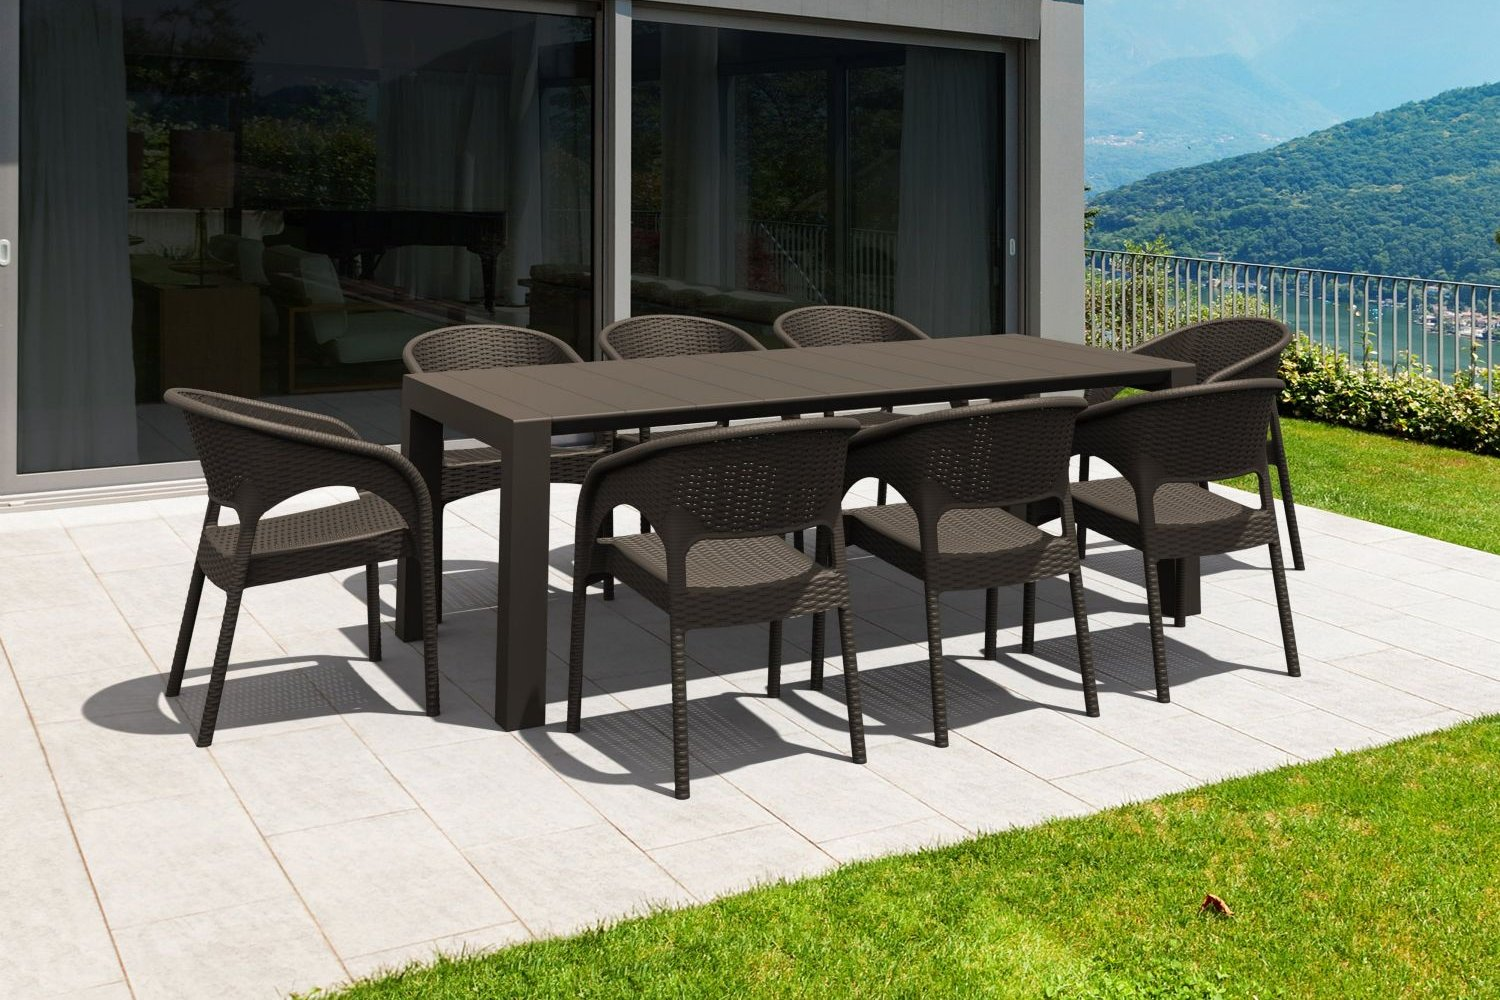 Panama Extendable Patio Dining Set 9 piece Dark Gray ISP8083S-DG - 1